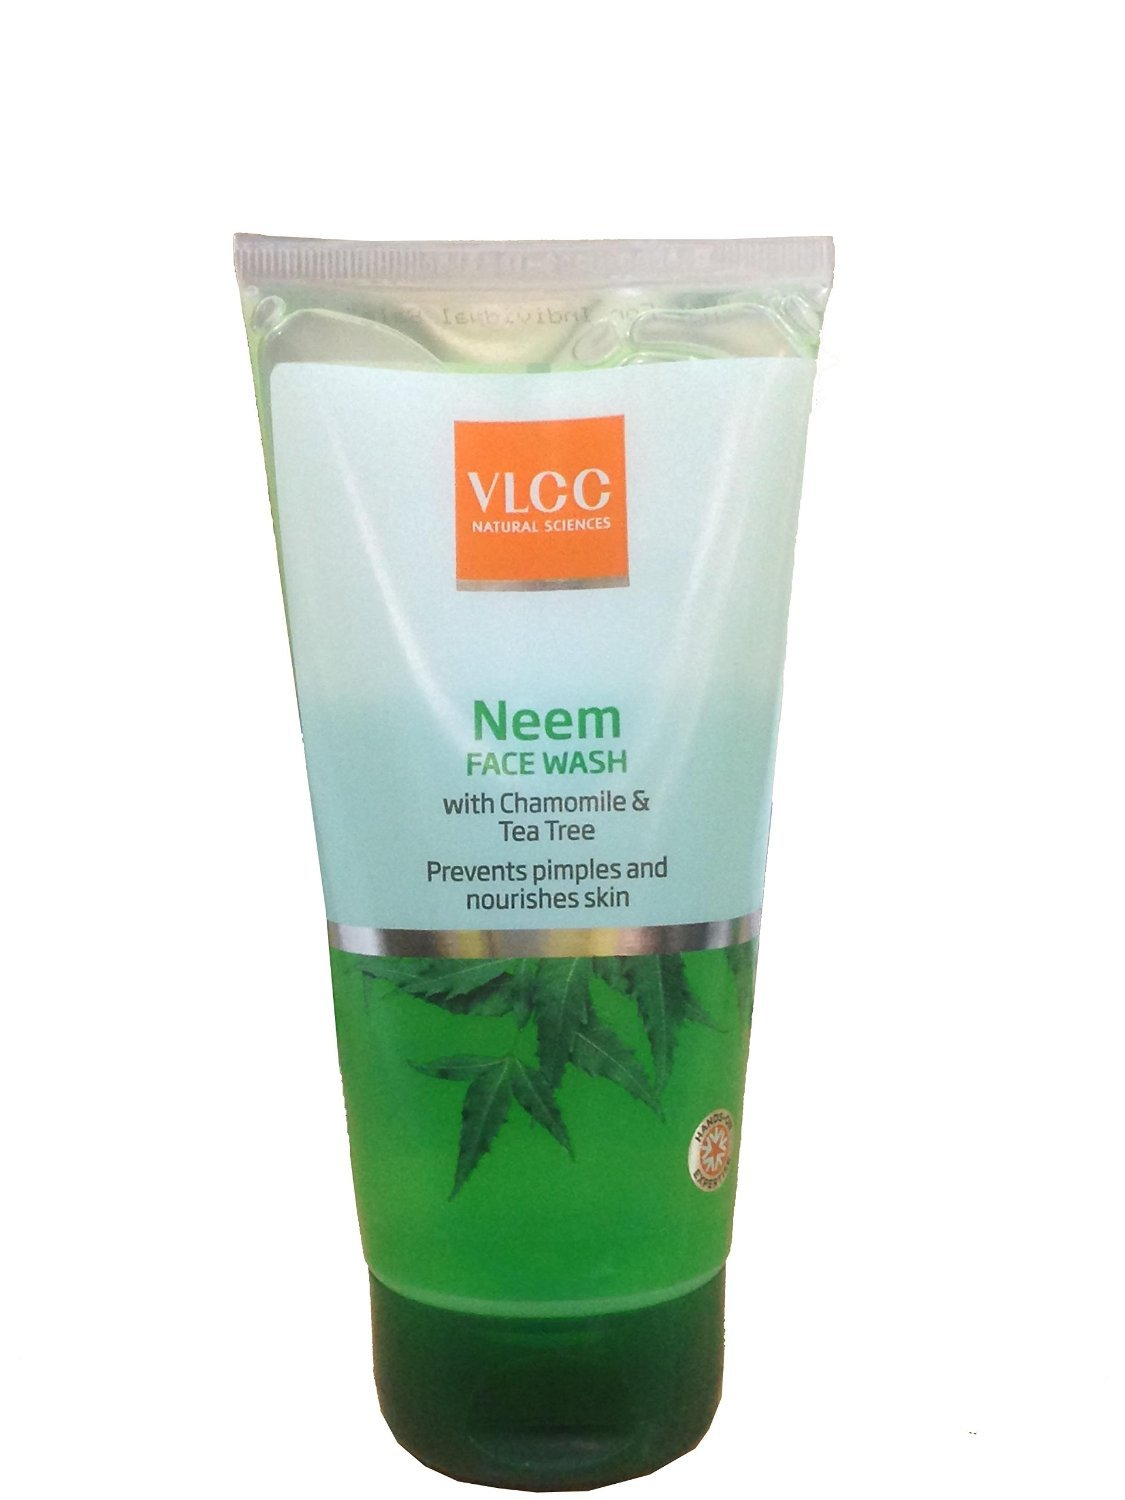 VLCC Neem Face Wash